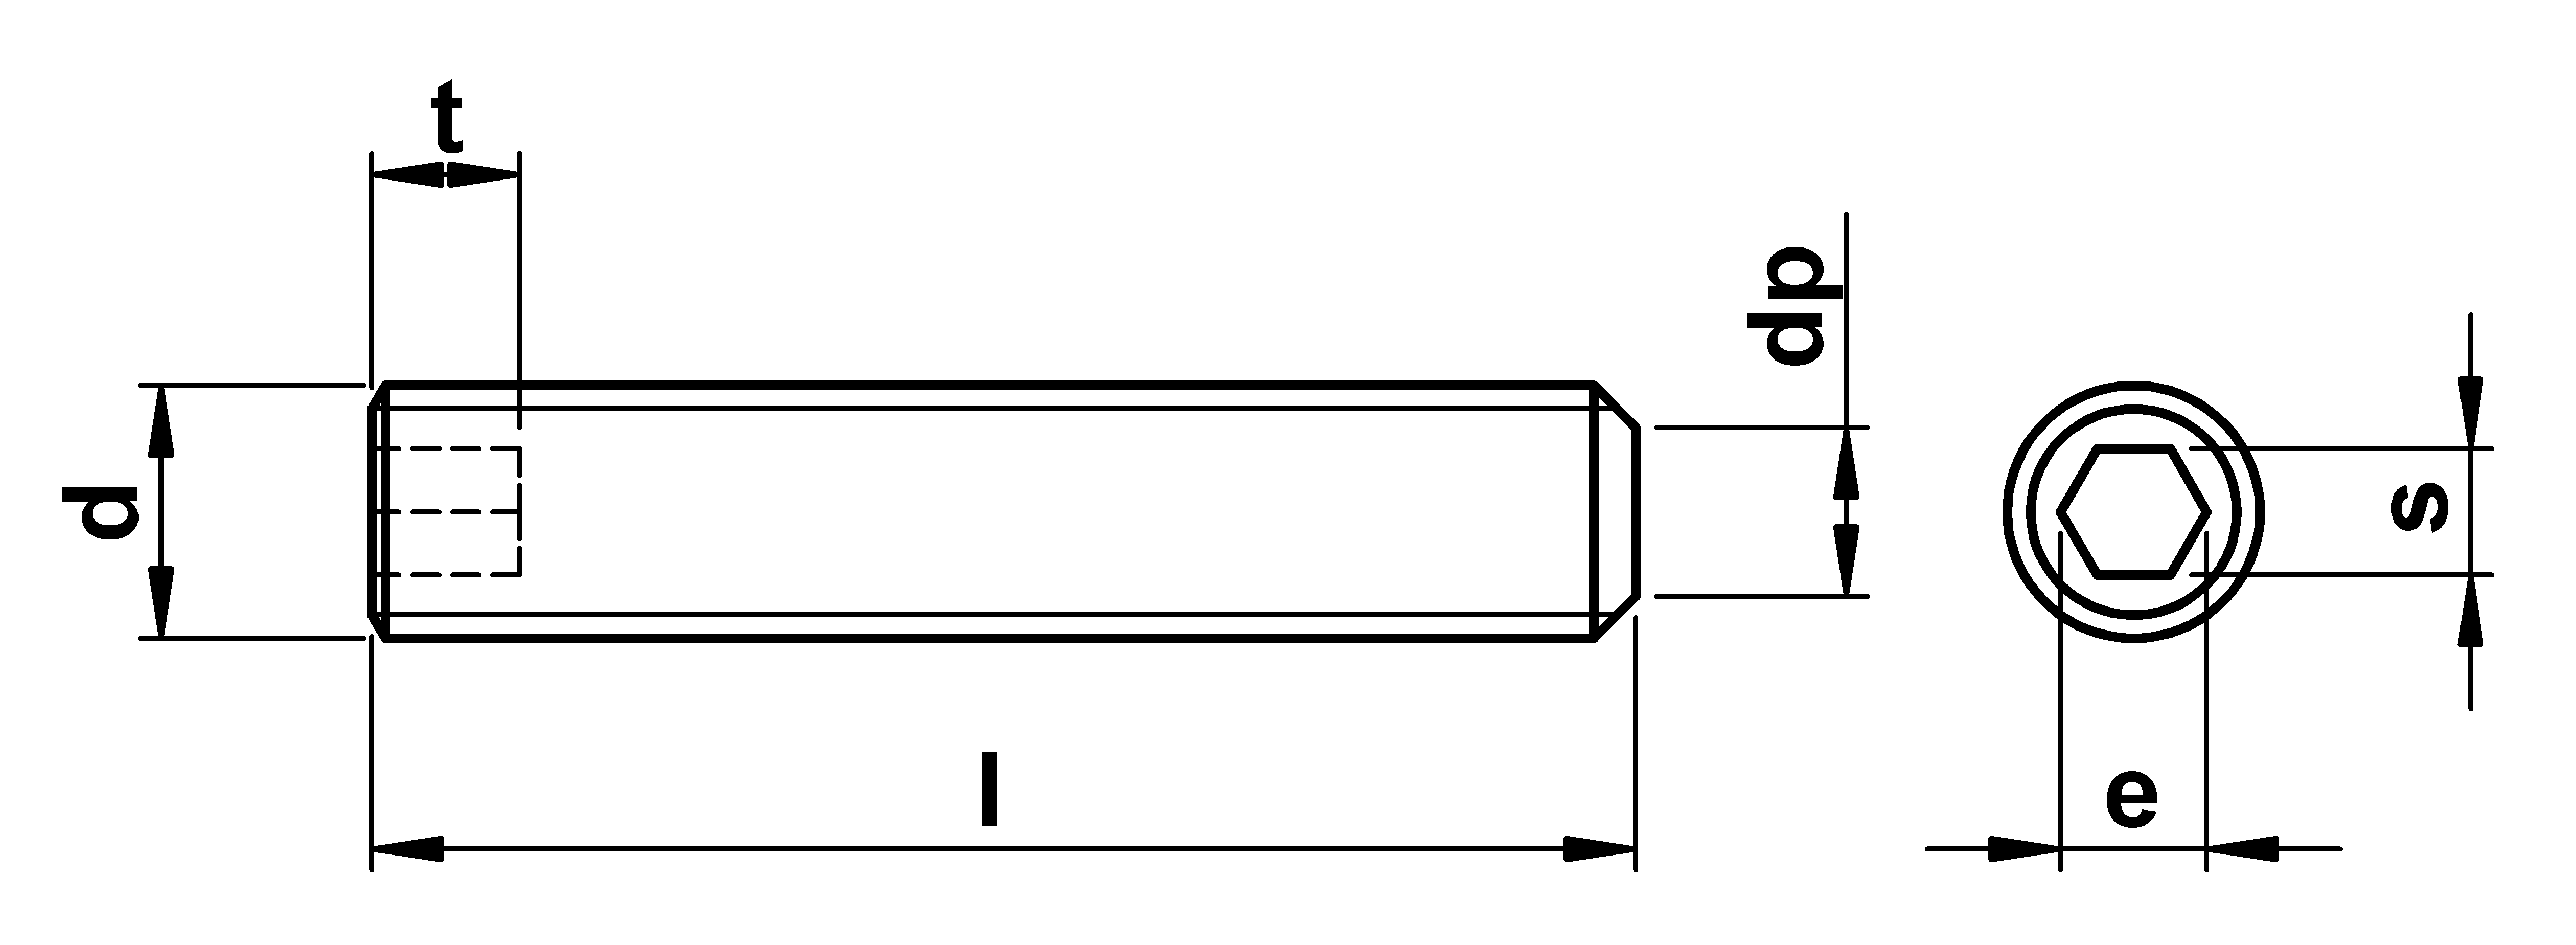 technical drawing of Flat Point Grub Screws ISO 4026 (DIN 913)